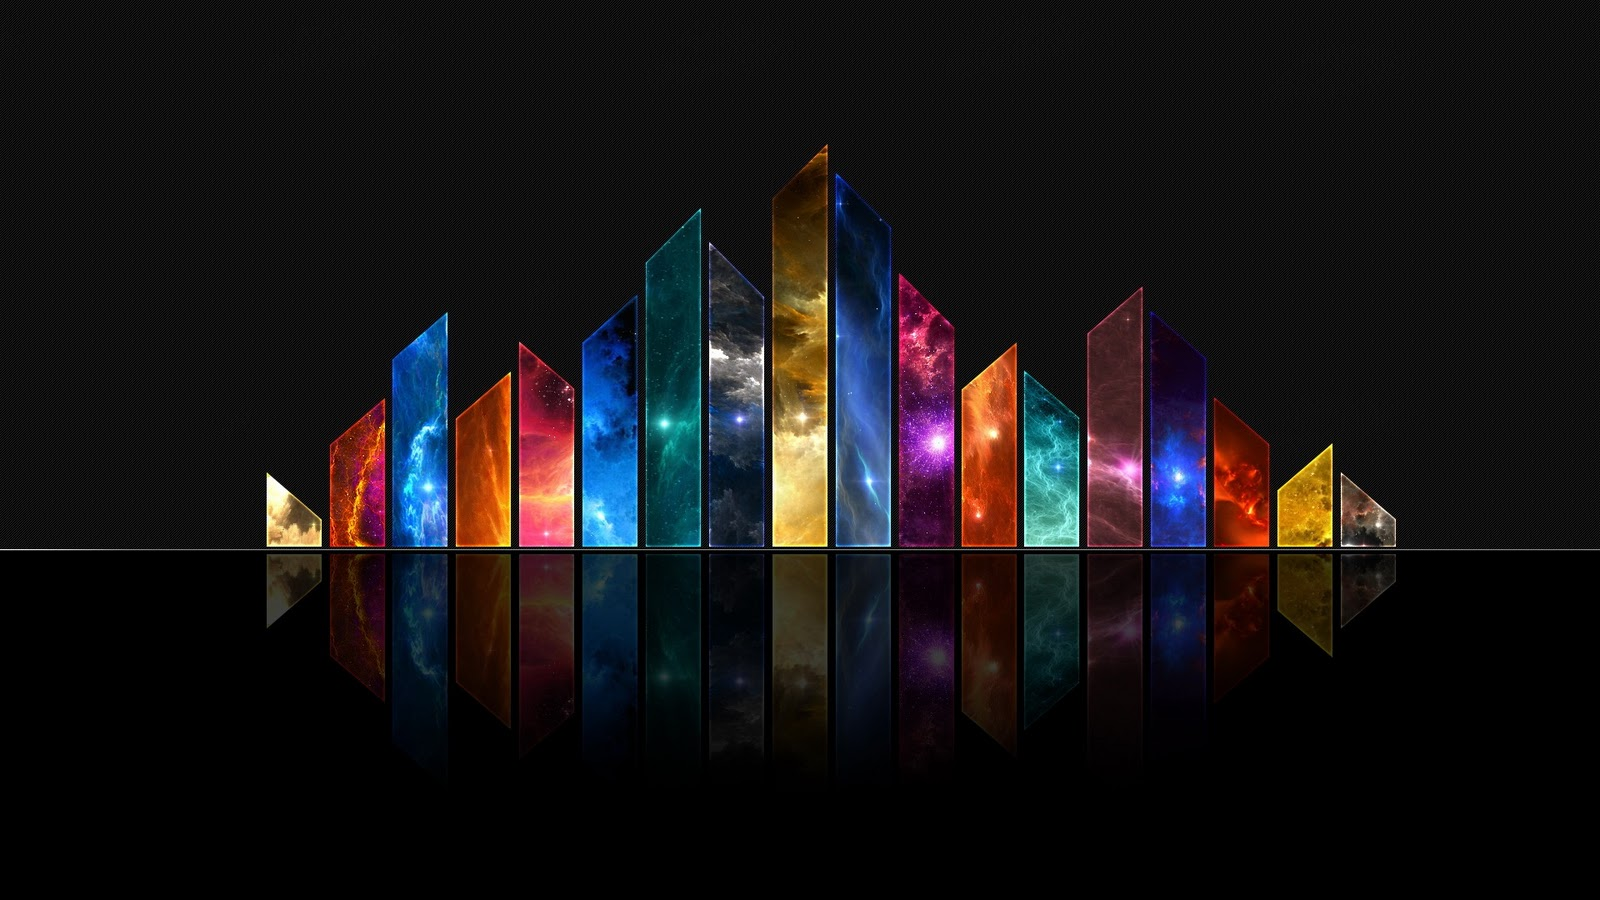 HD Wallpapers: HD Abstracts